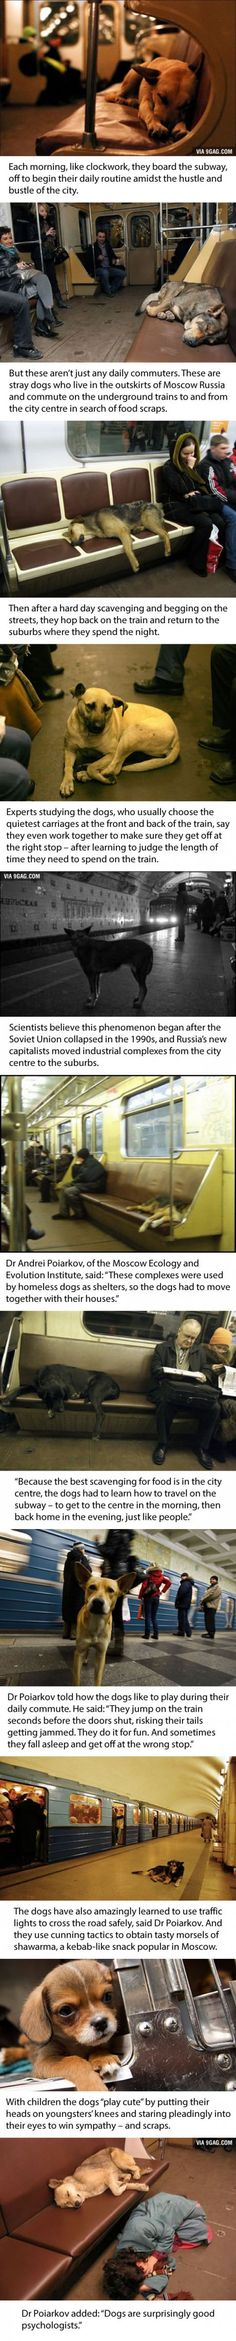 Dogs in Russia